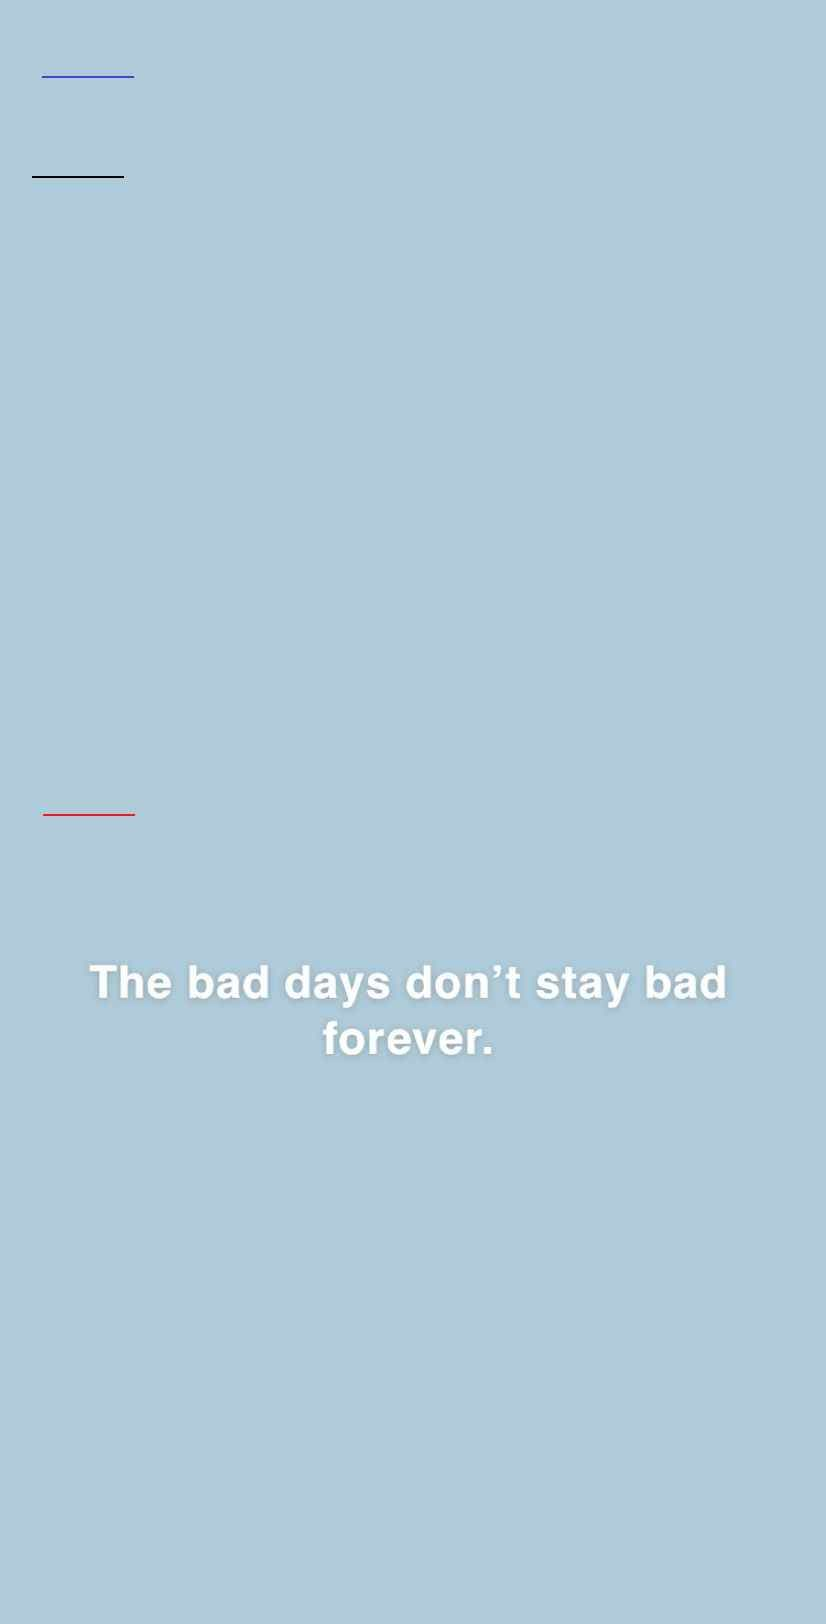 Light Blue And White Aesthetic Quote Wallpaper Baggrundiphone In 2020